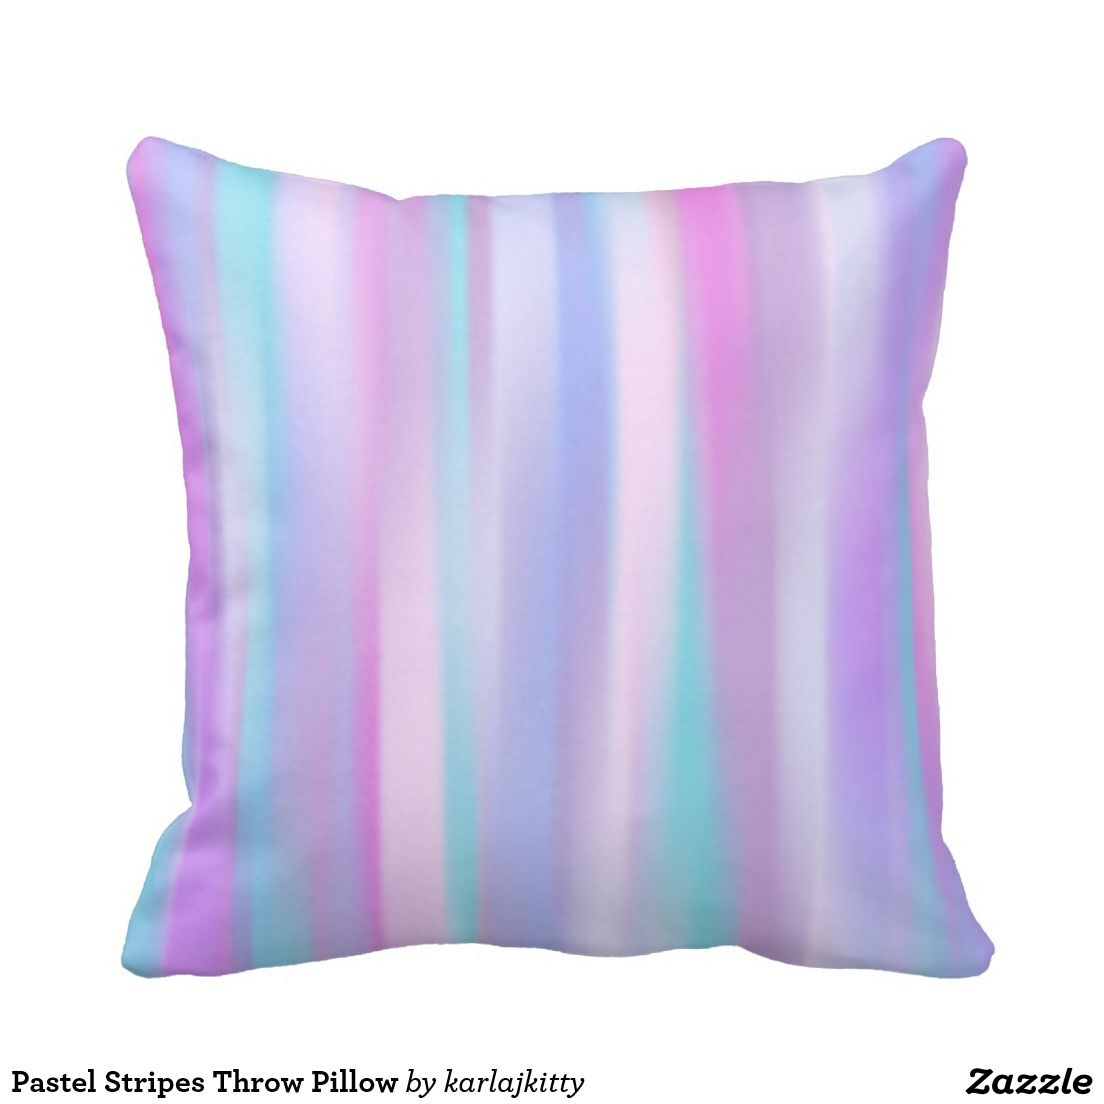 Pastel Stripes Throw Pillow Painted stripes of teal, blue, pink